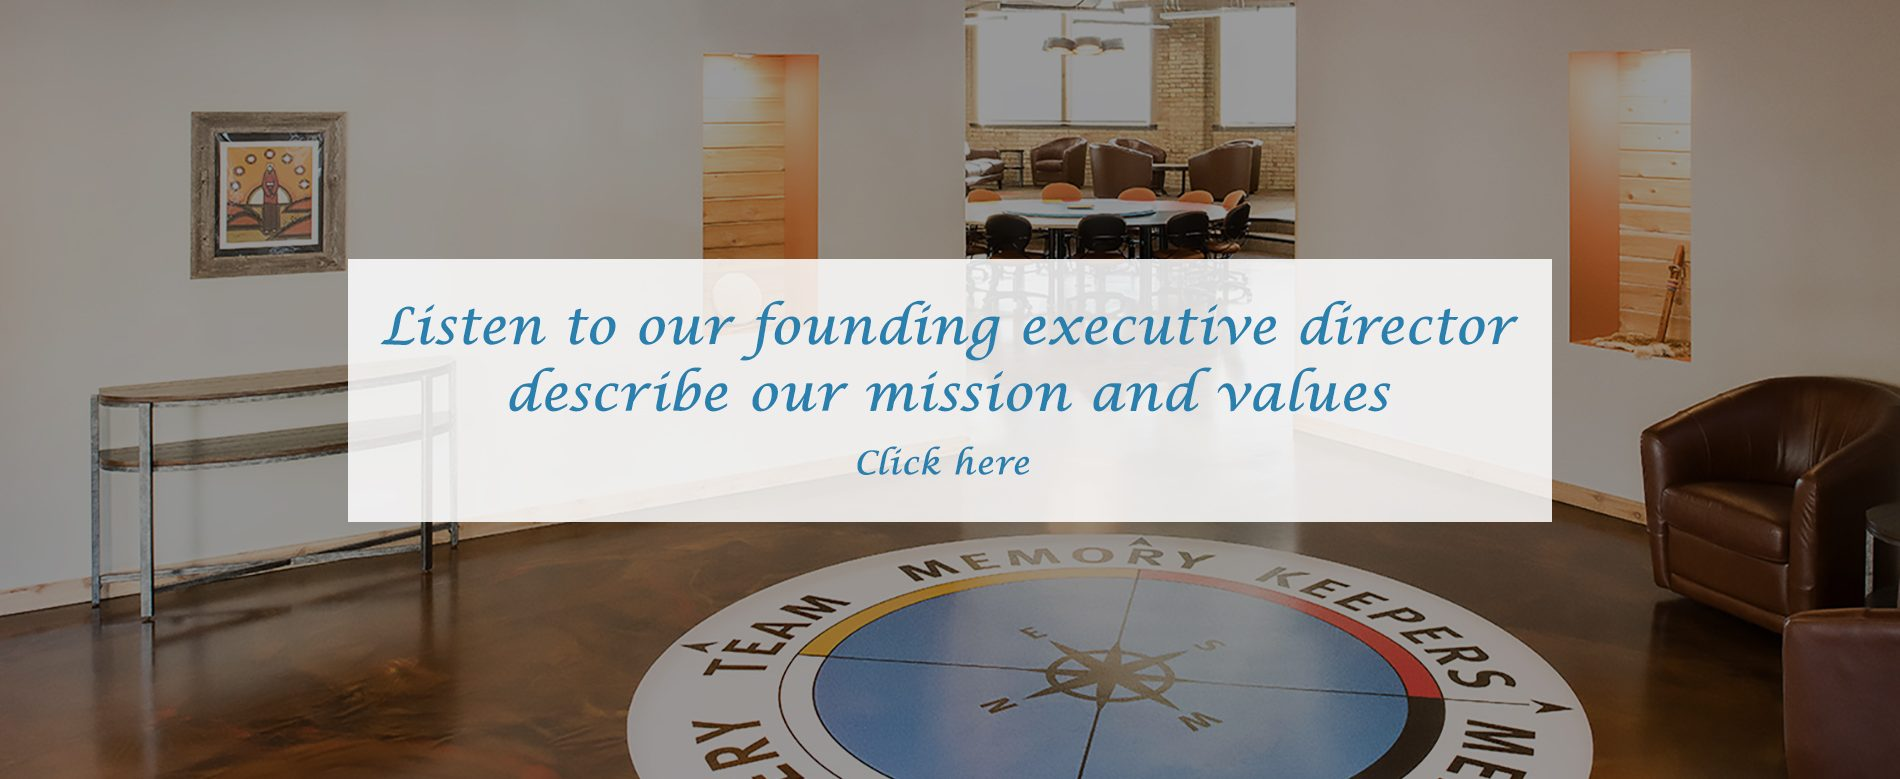 Listen to our founding executive directordescribe our mission and values